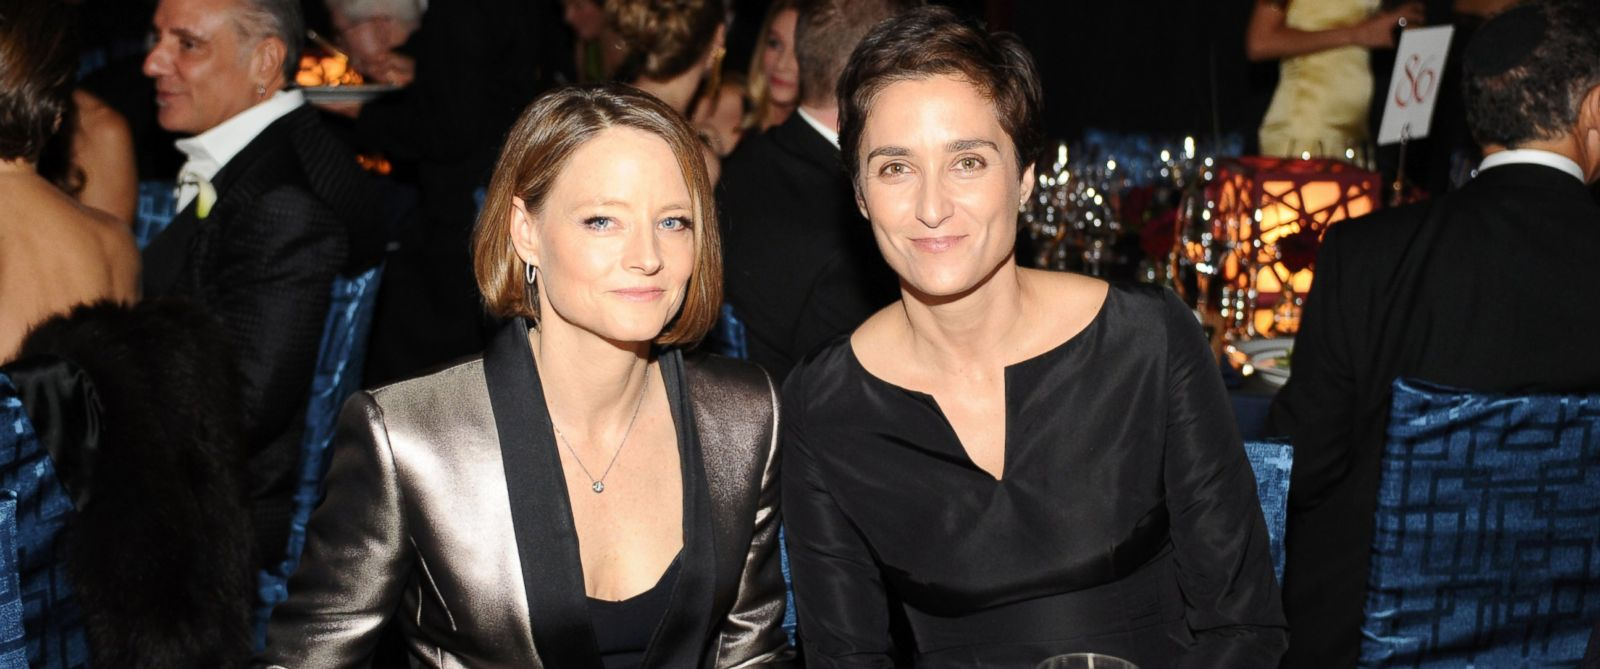 PHOTO: Jodie Foster and Alexandra Hedison attend the Wallis Annenberg Center for the Performing Arts Inaugural Gala presented by Salvatore Ferragamo at the Wallis Annenberg Center for the Performing Arts, Oct. 17, 2013, in Beverly Hills, Calif.